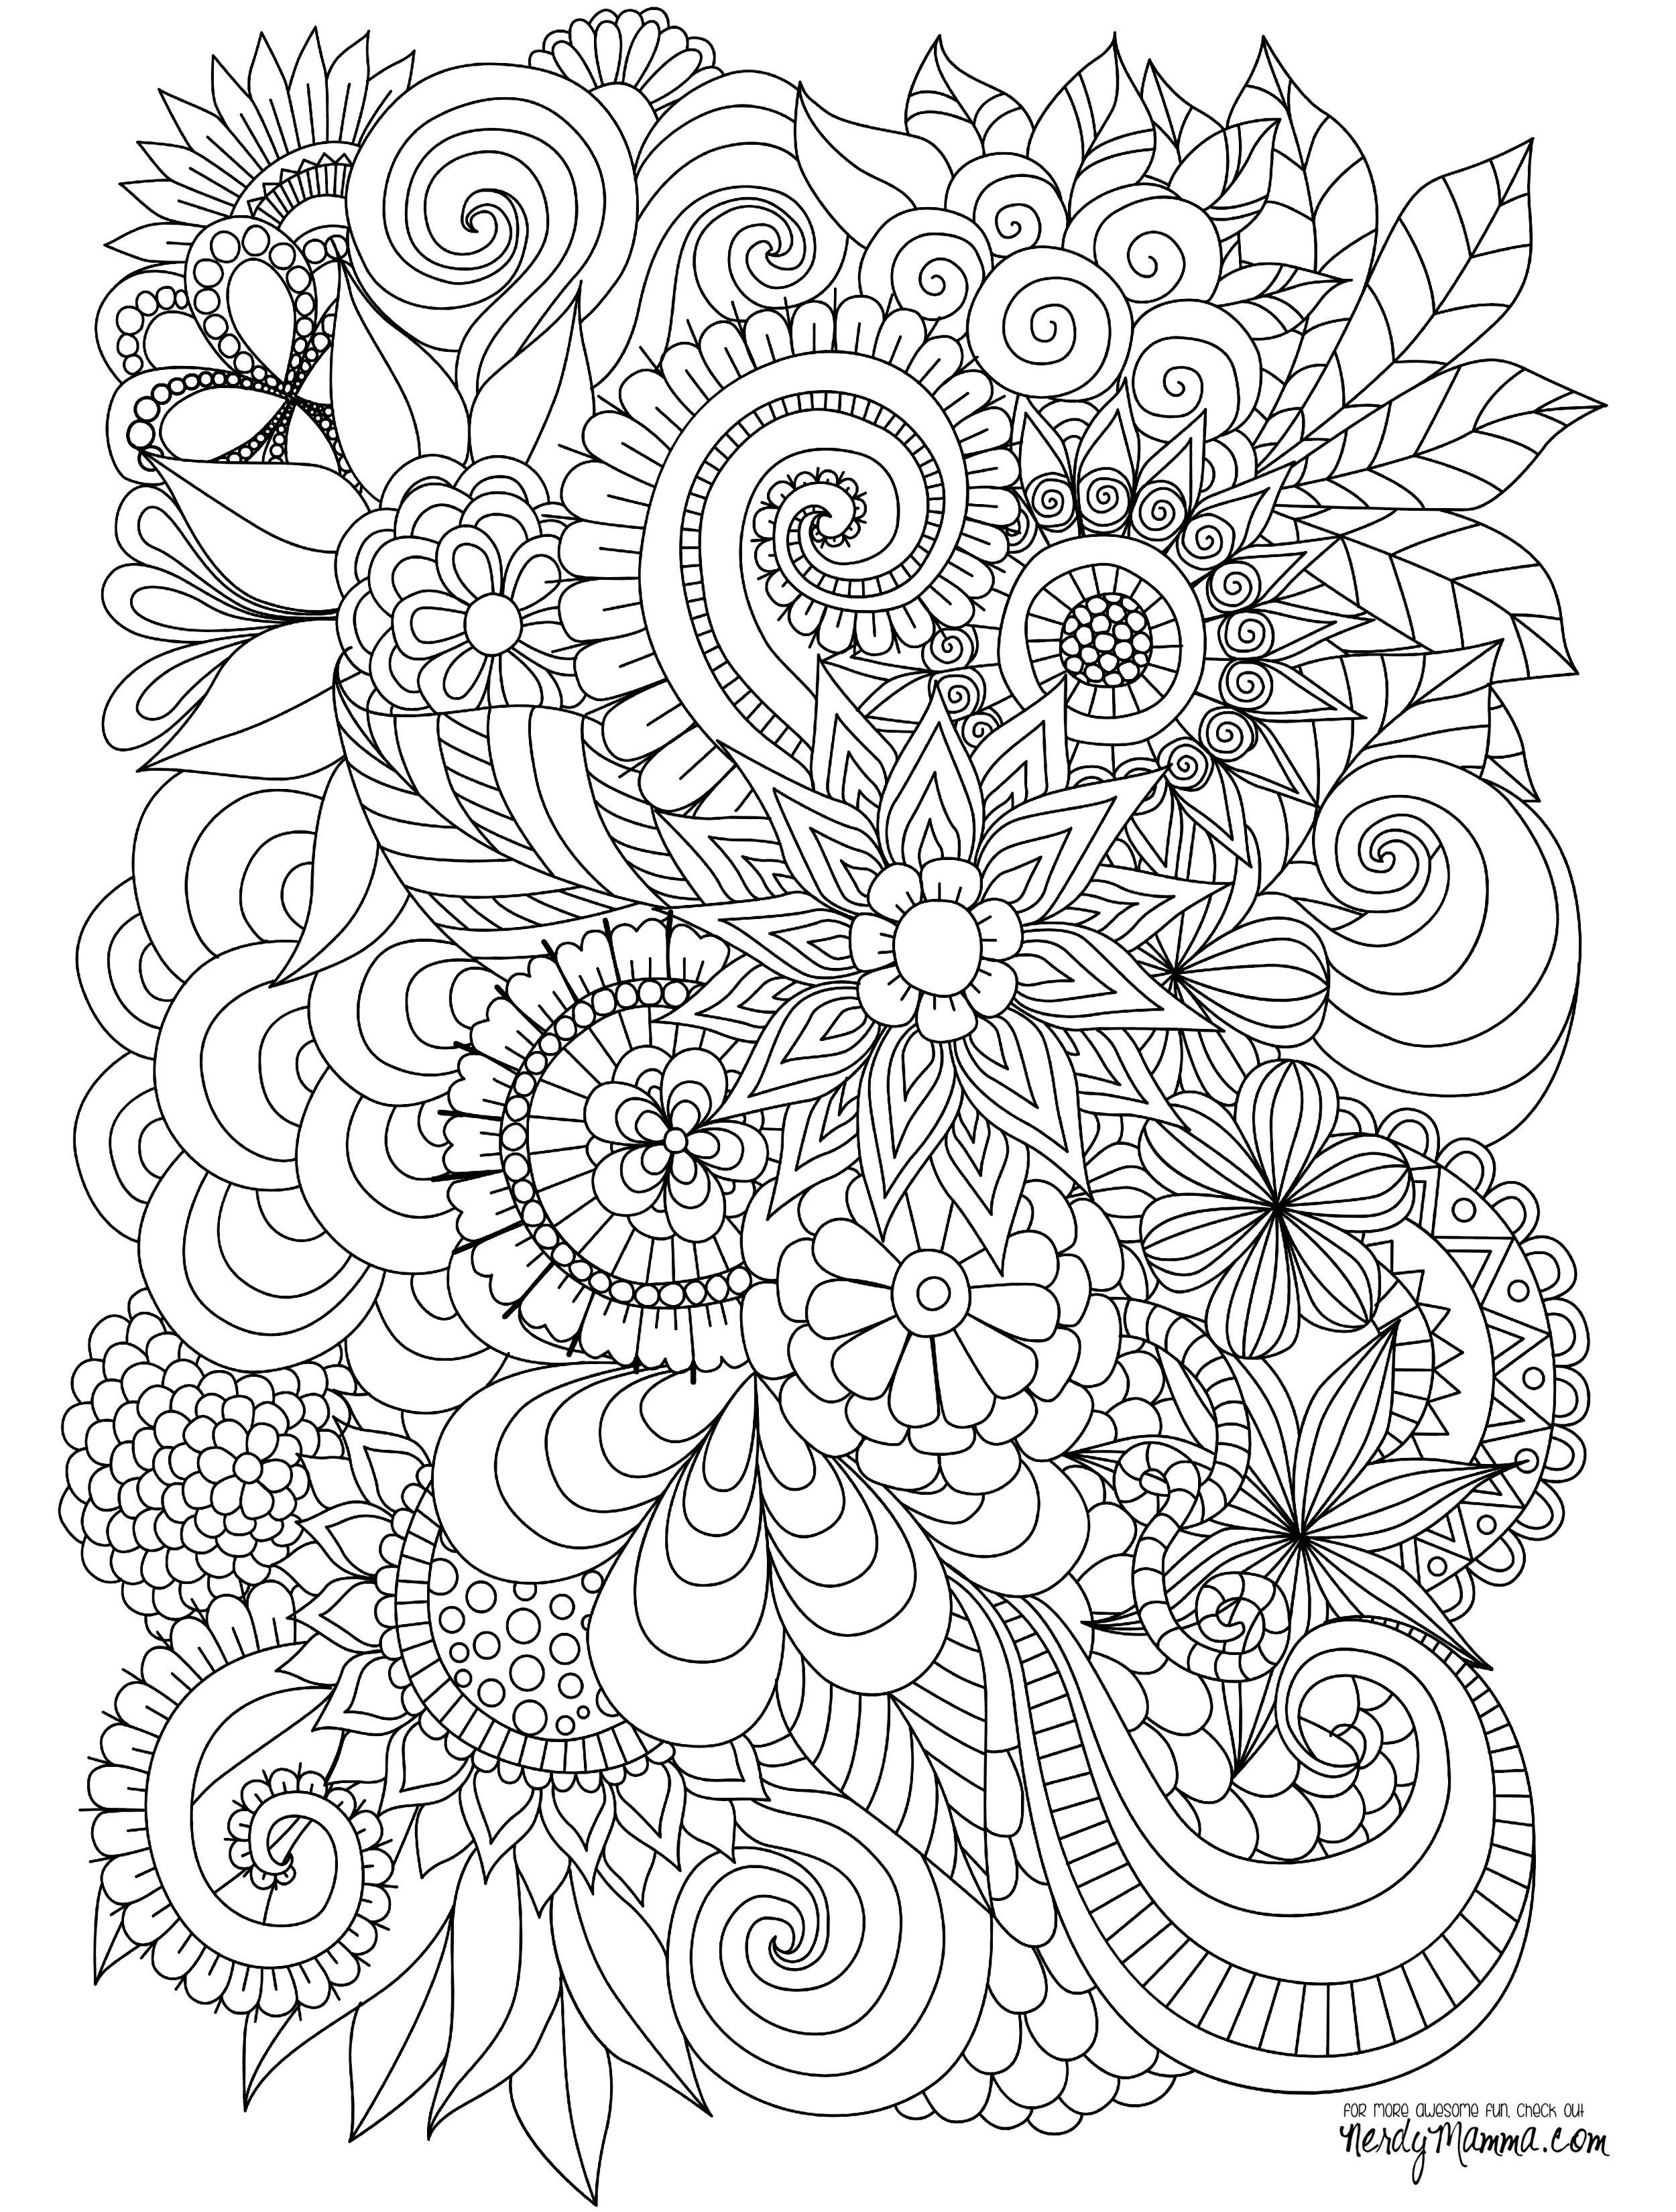 Hawaii Coloring Pages  Download 3c - Save it to your computer